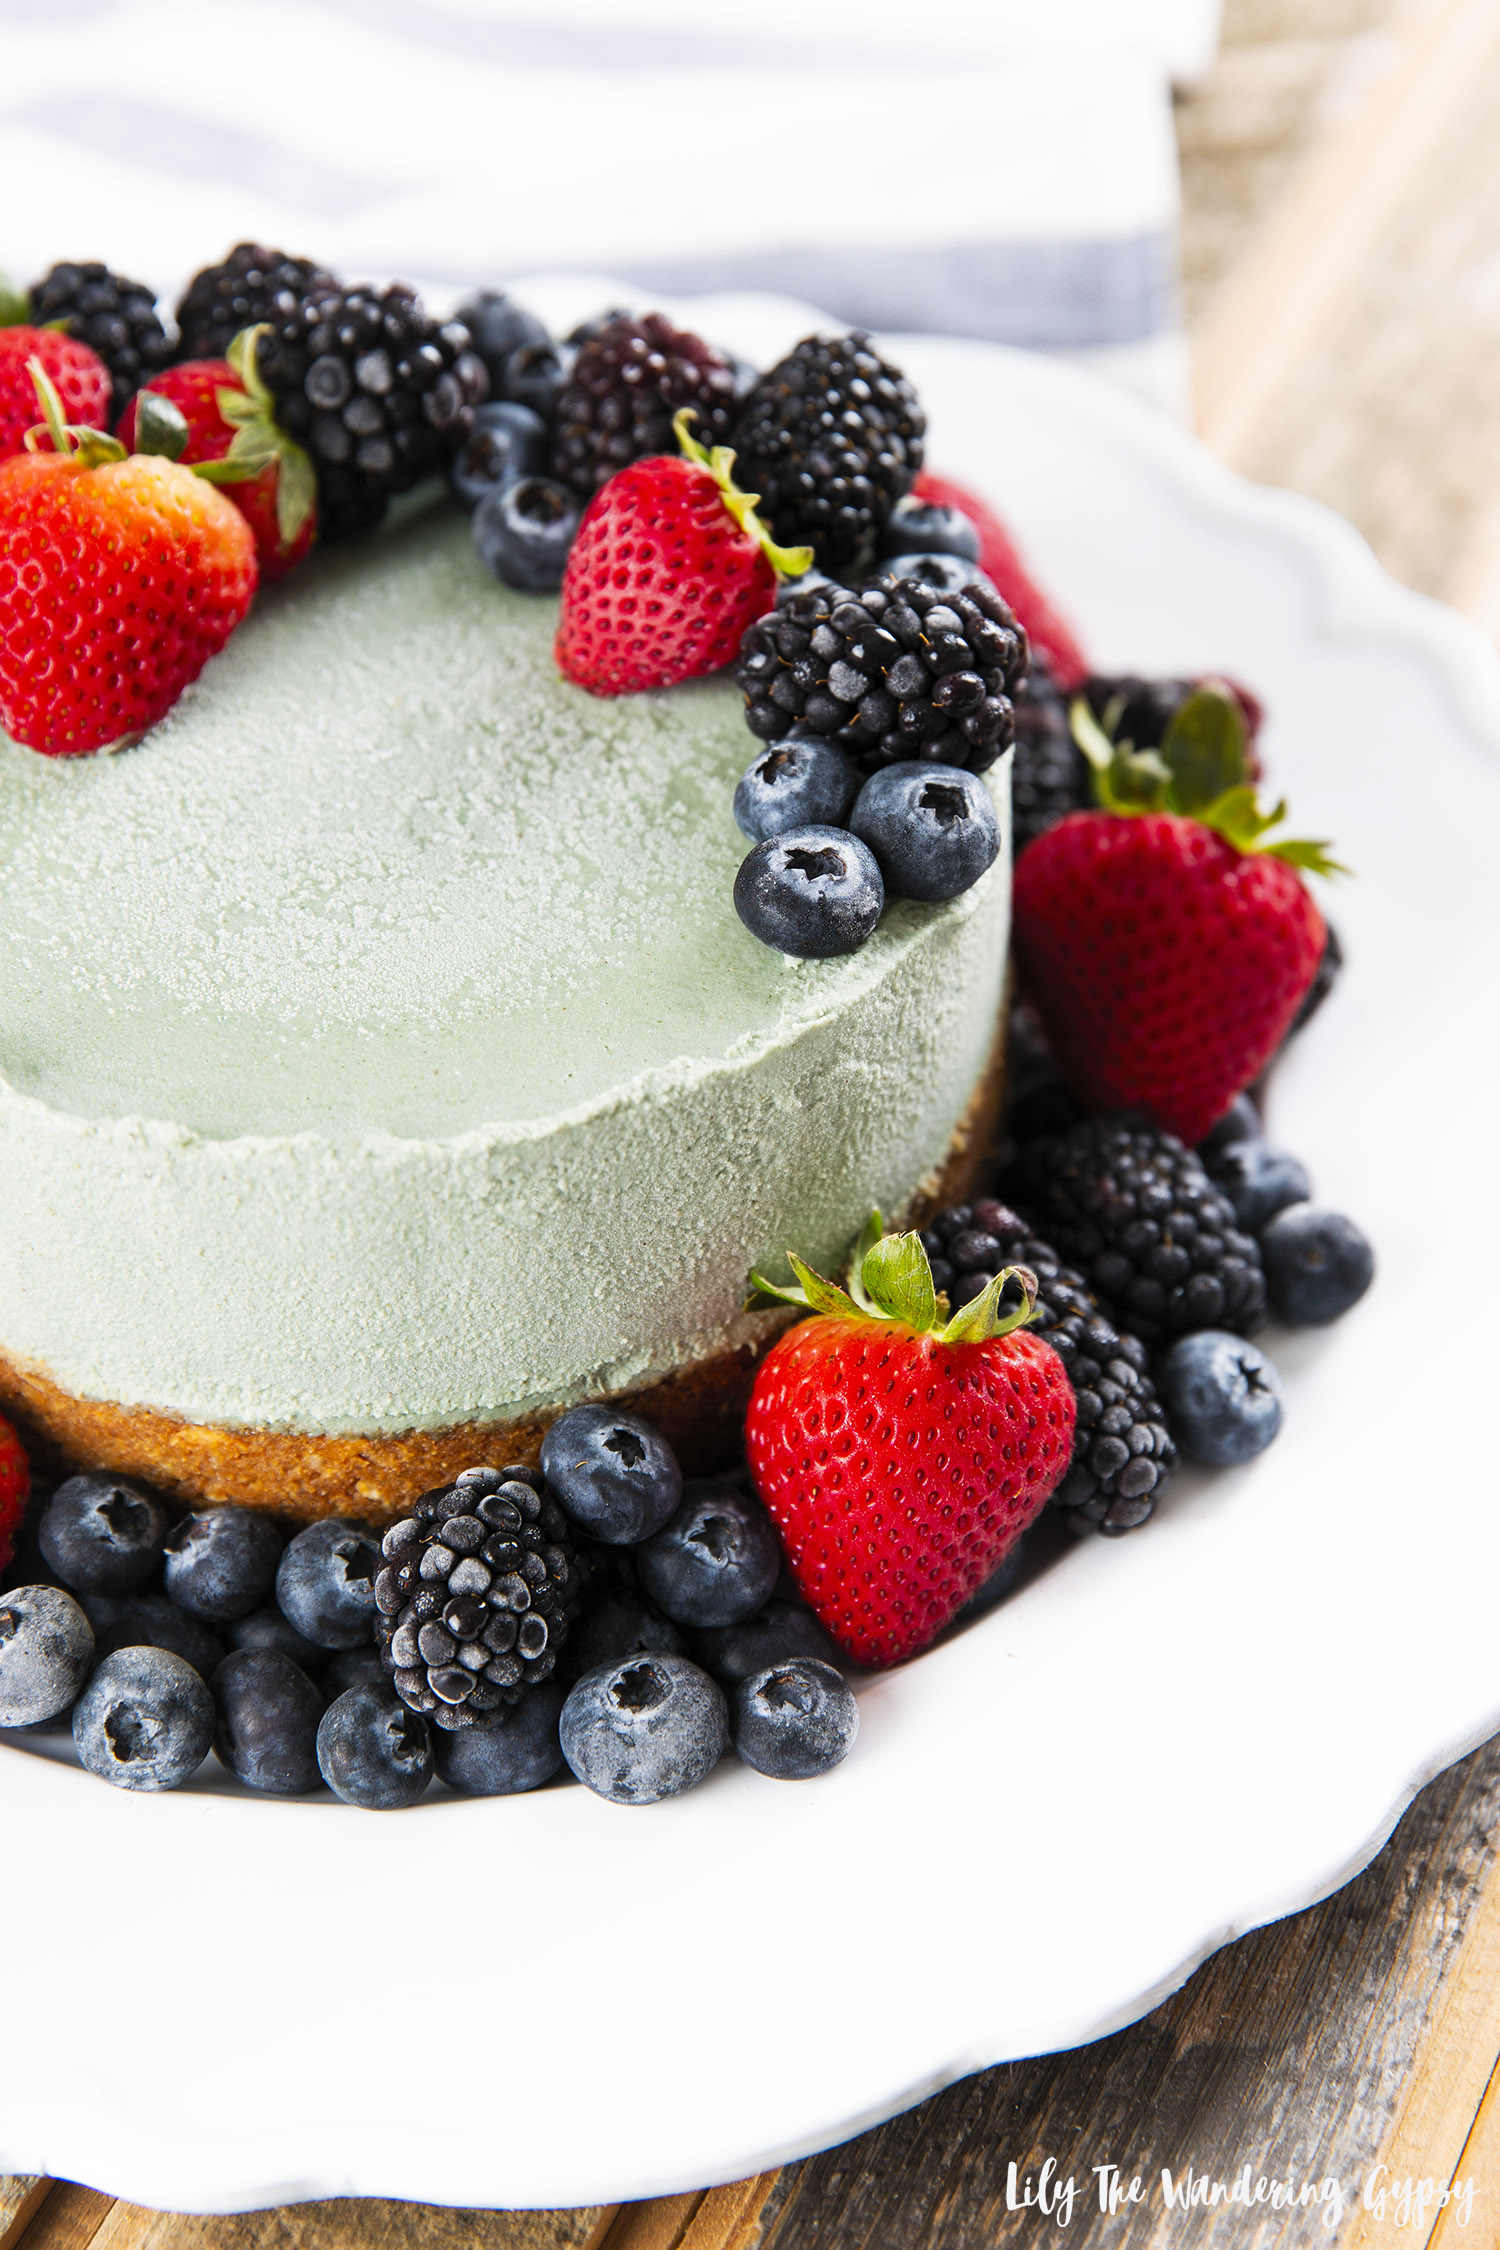 Vegetarian Cashew and Superior Green Filled Cheesecake Recipe